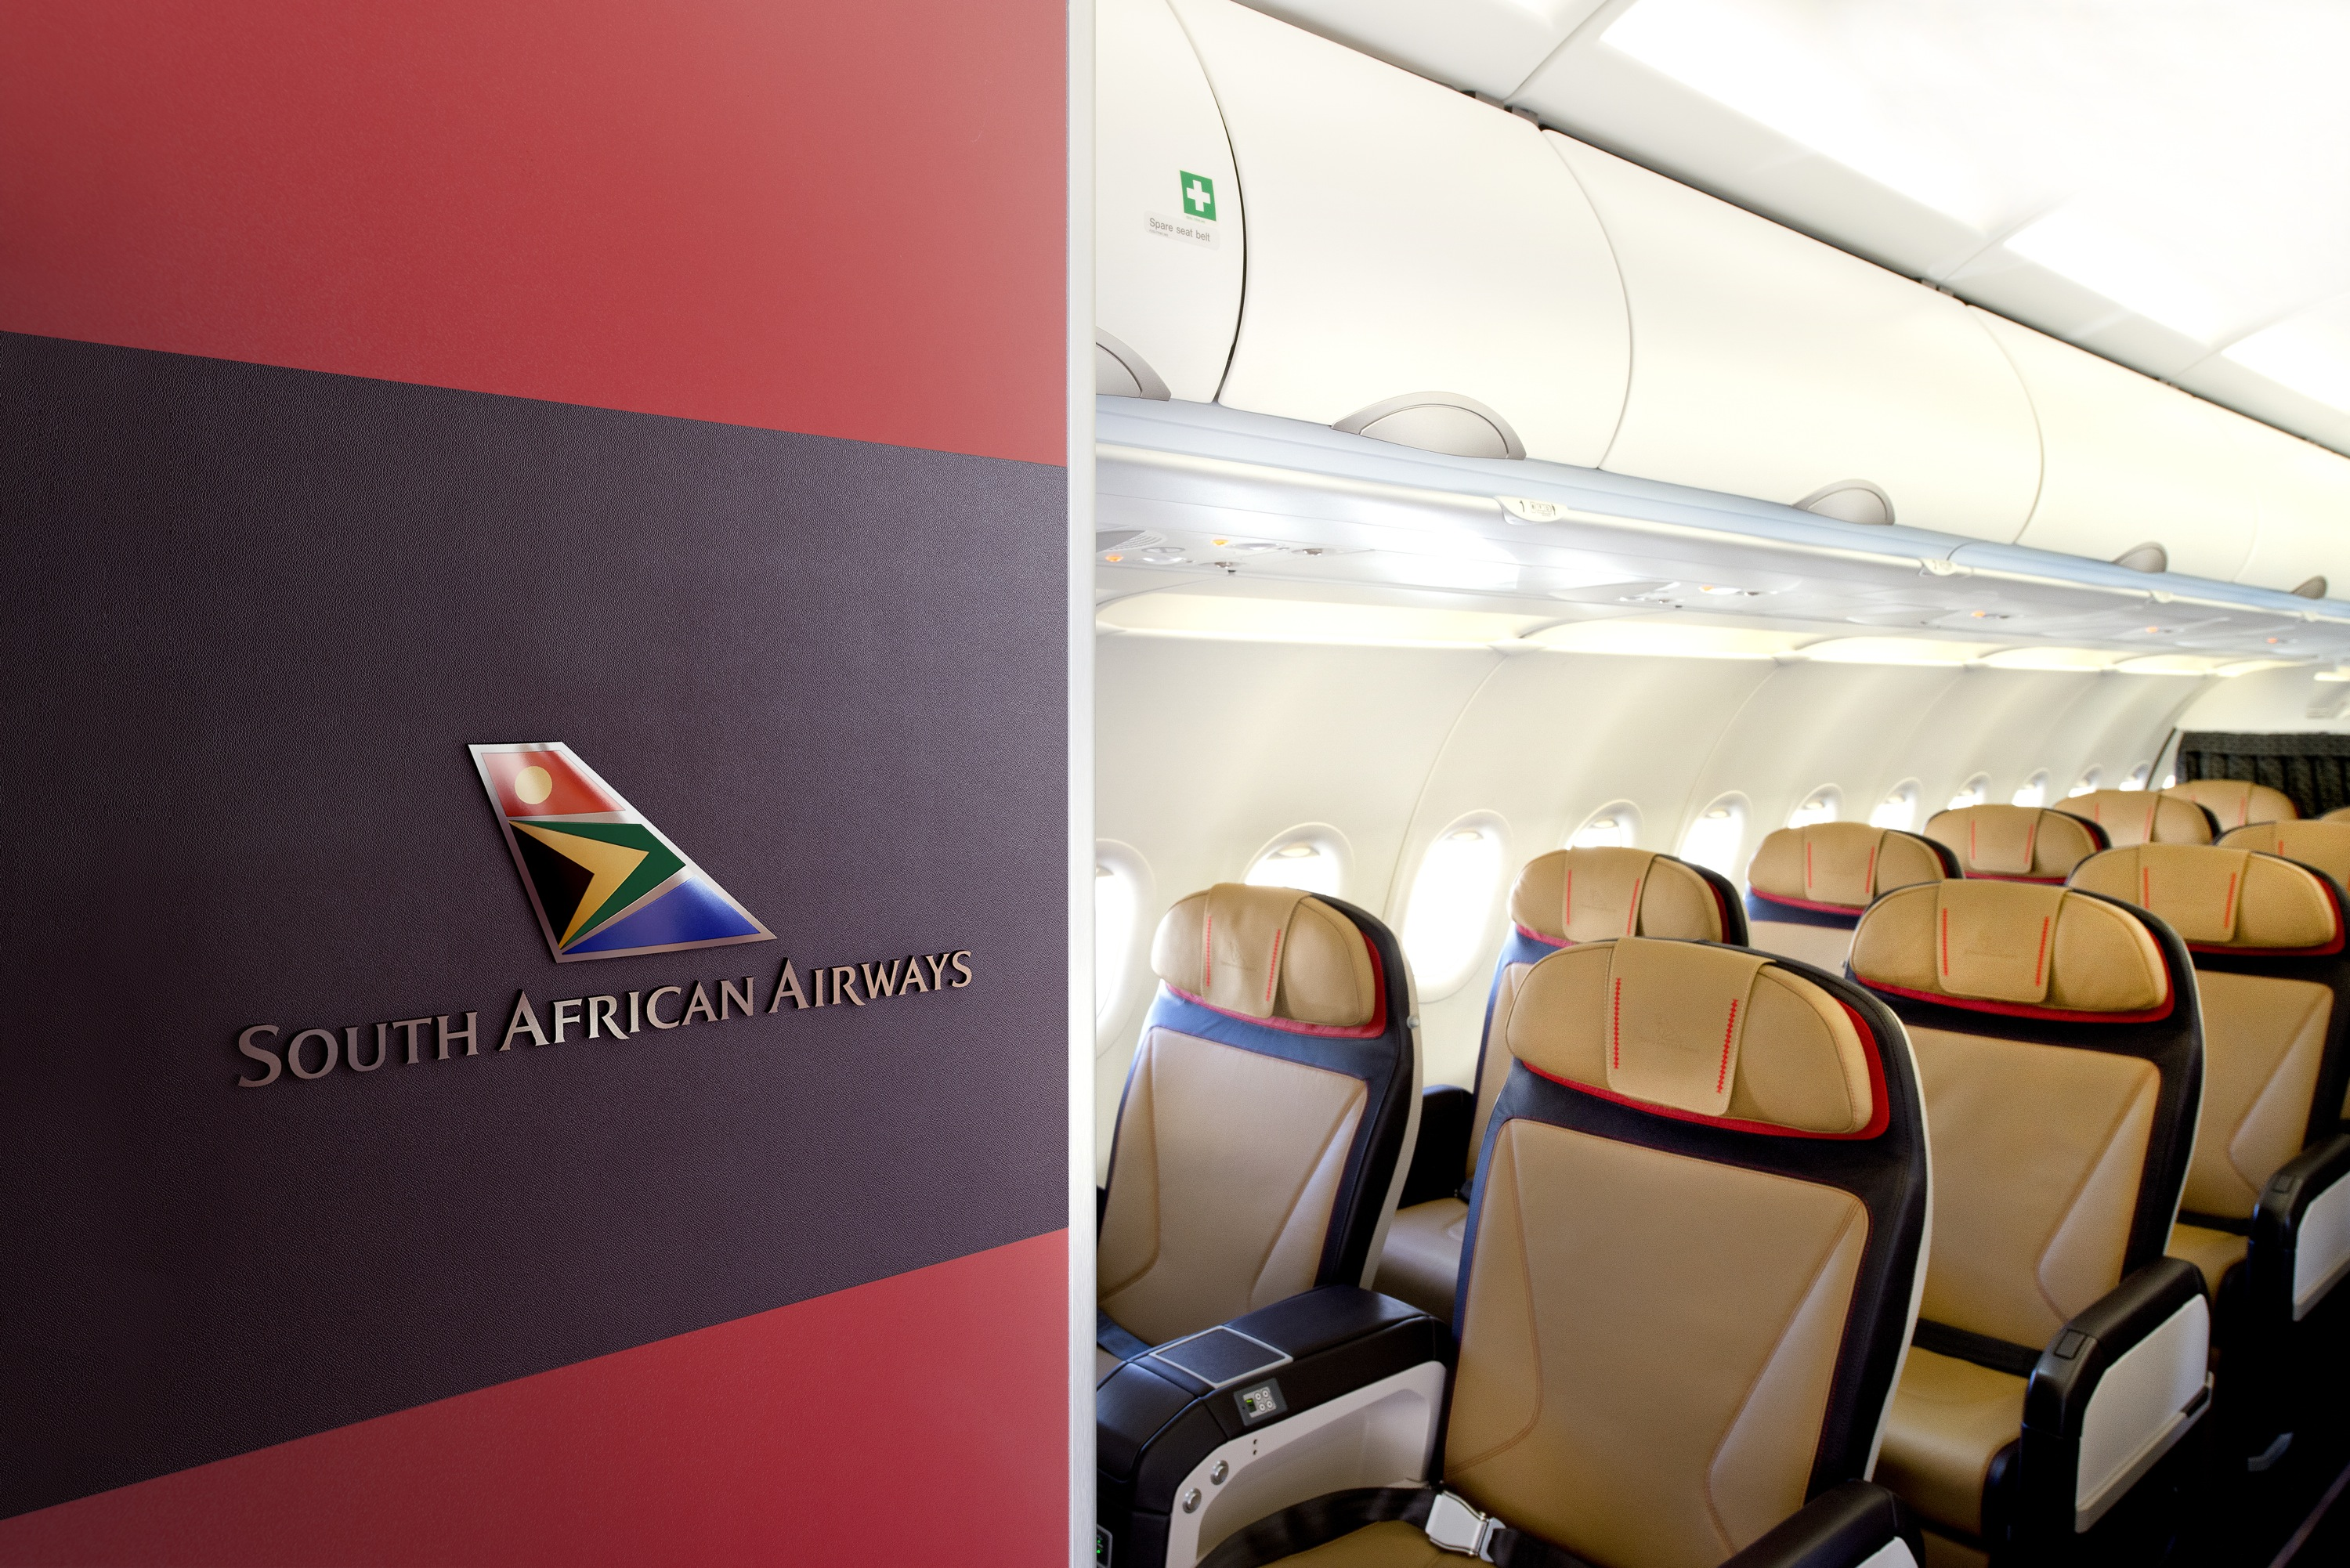 South African Airways Reveal New Short Haul Interiors